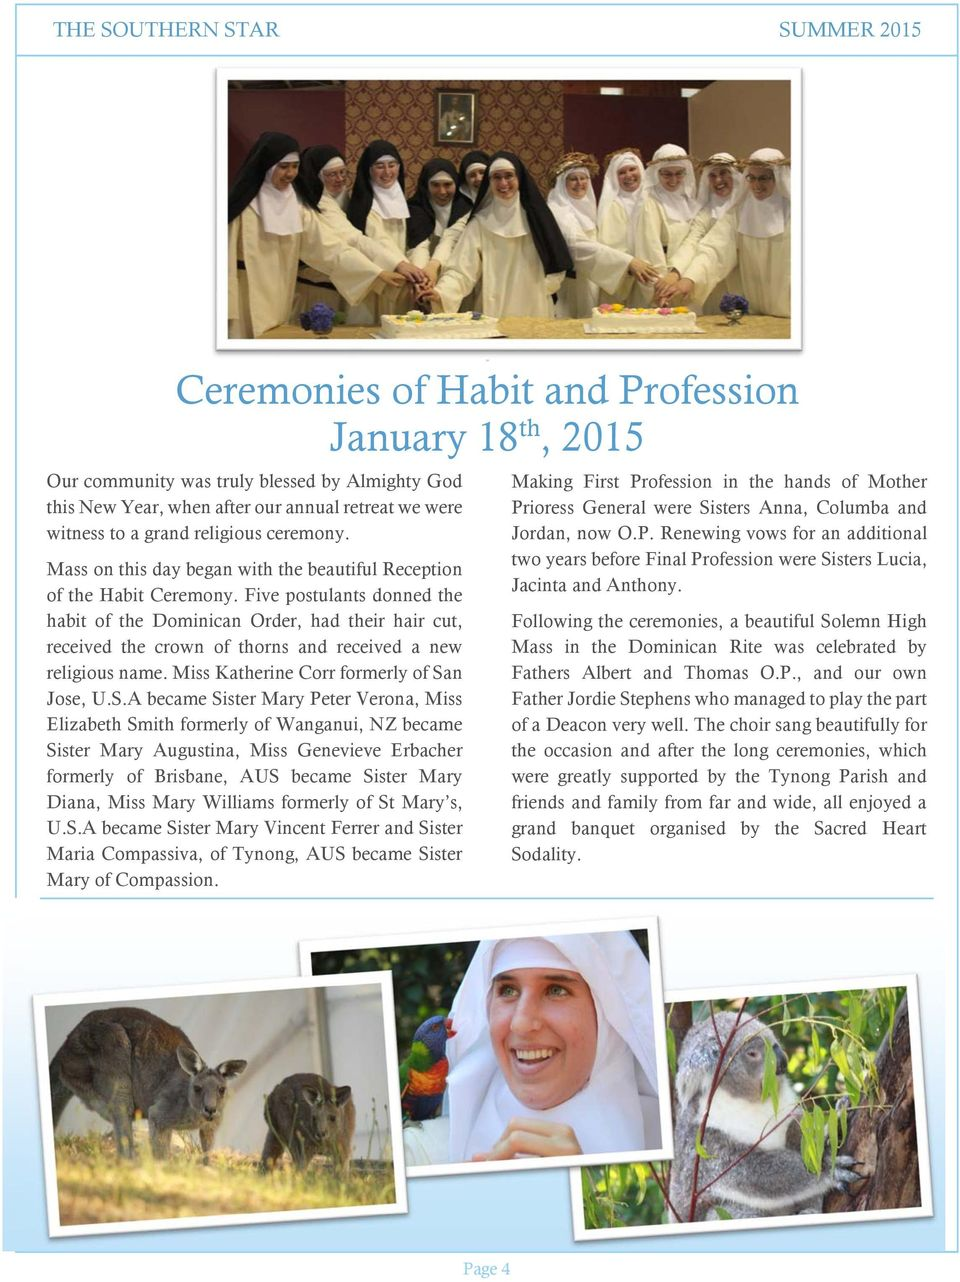 Five postulants donned the habit of the Dominican Order, had their hair cut, received the crown of thorns and received a new religious name. Miss Katherine Corr formerly of Sa